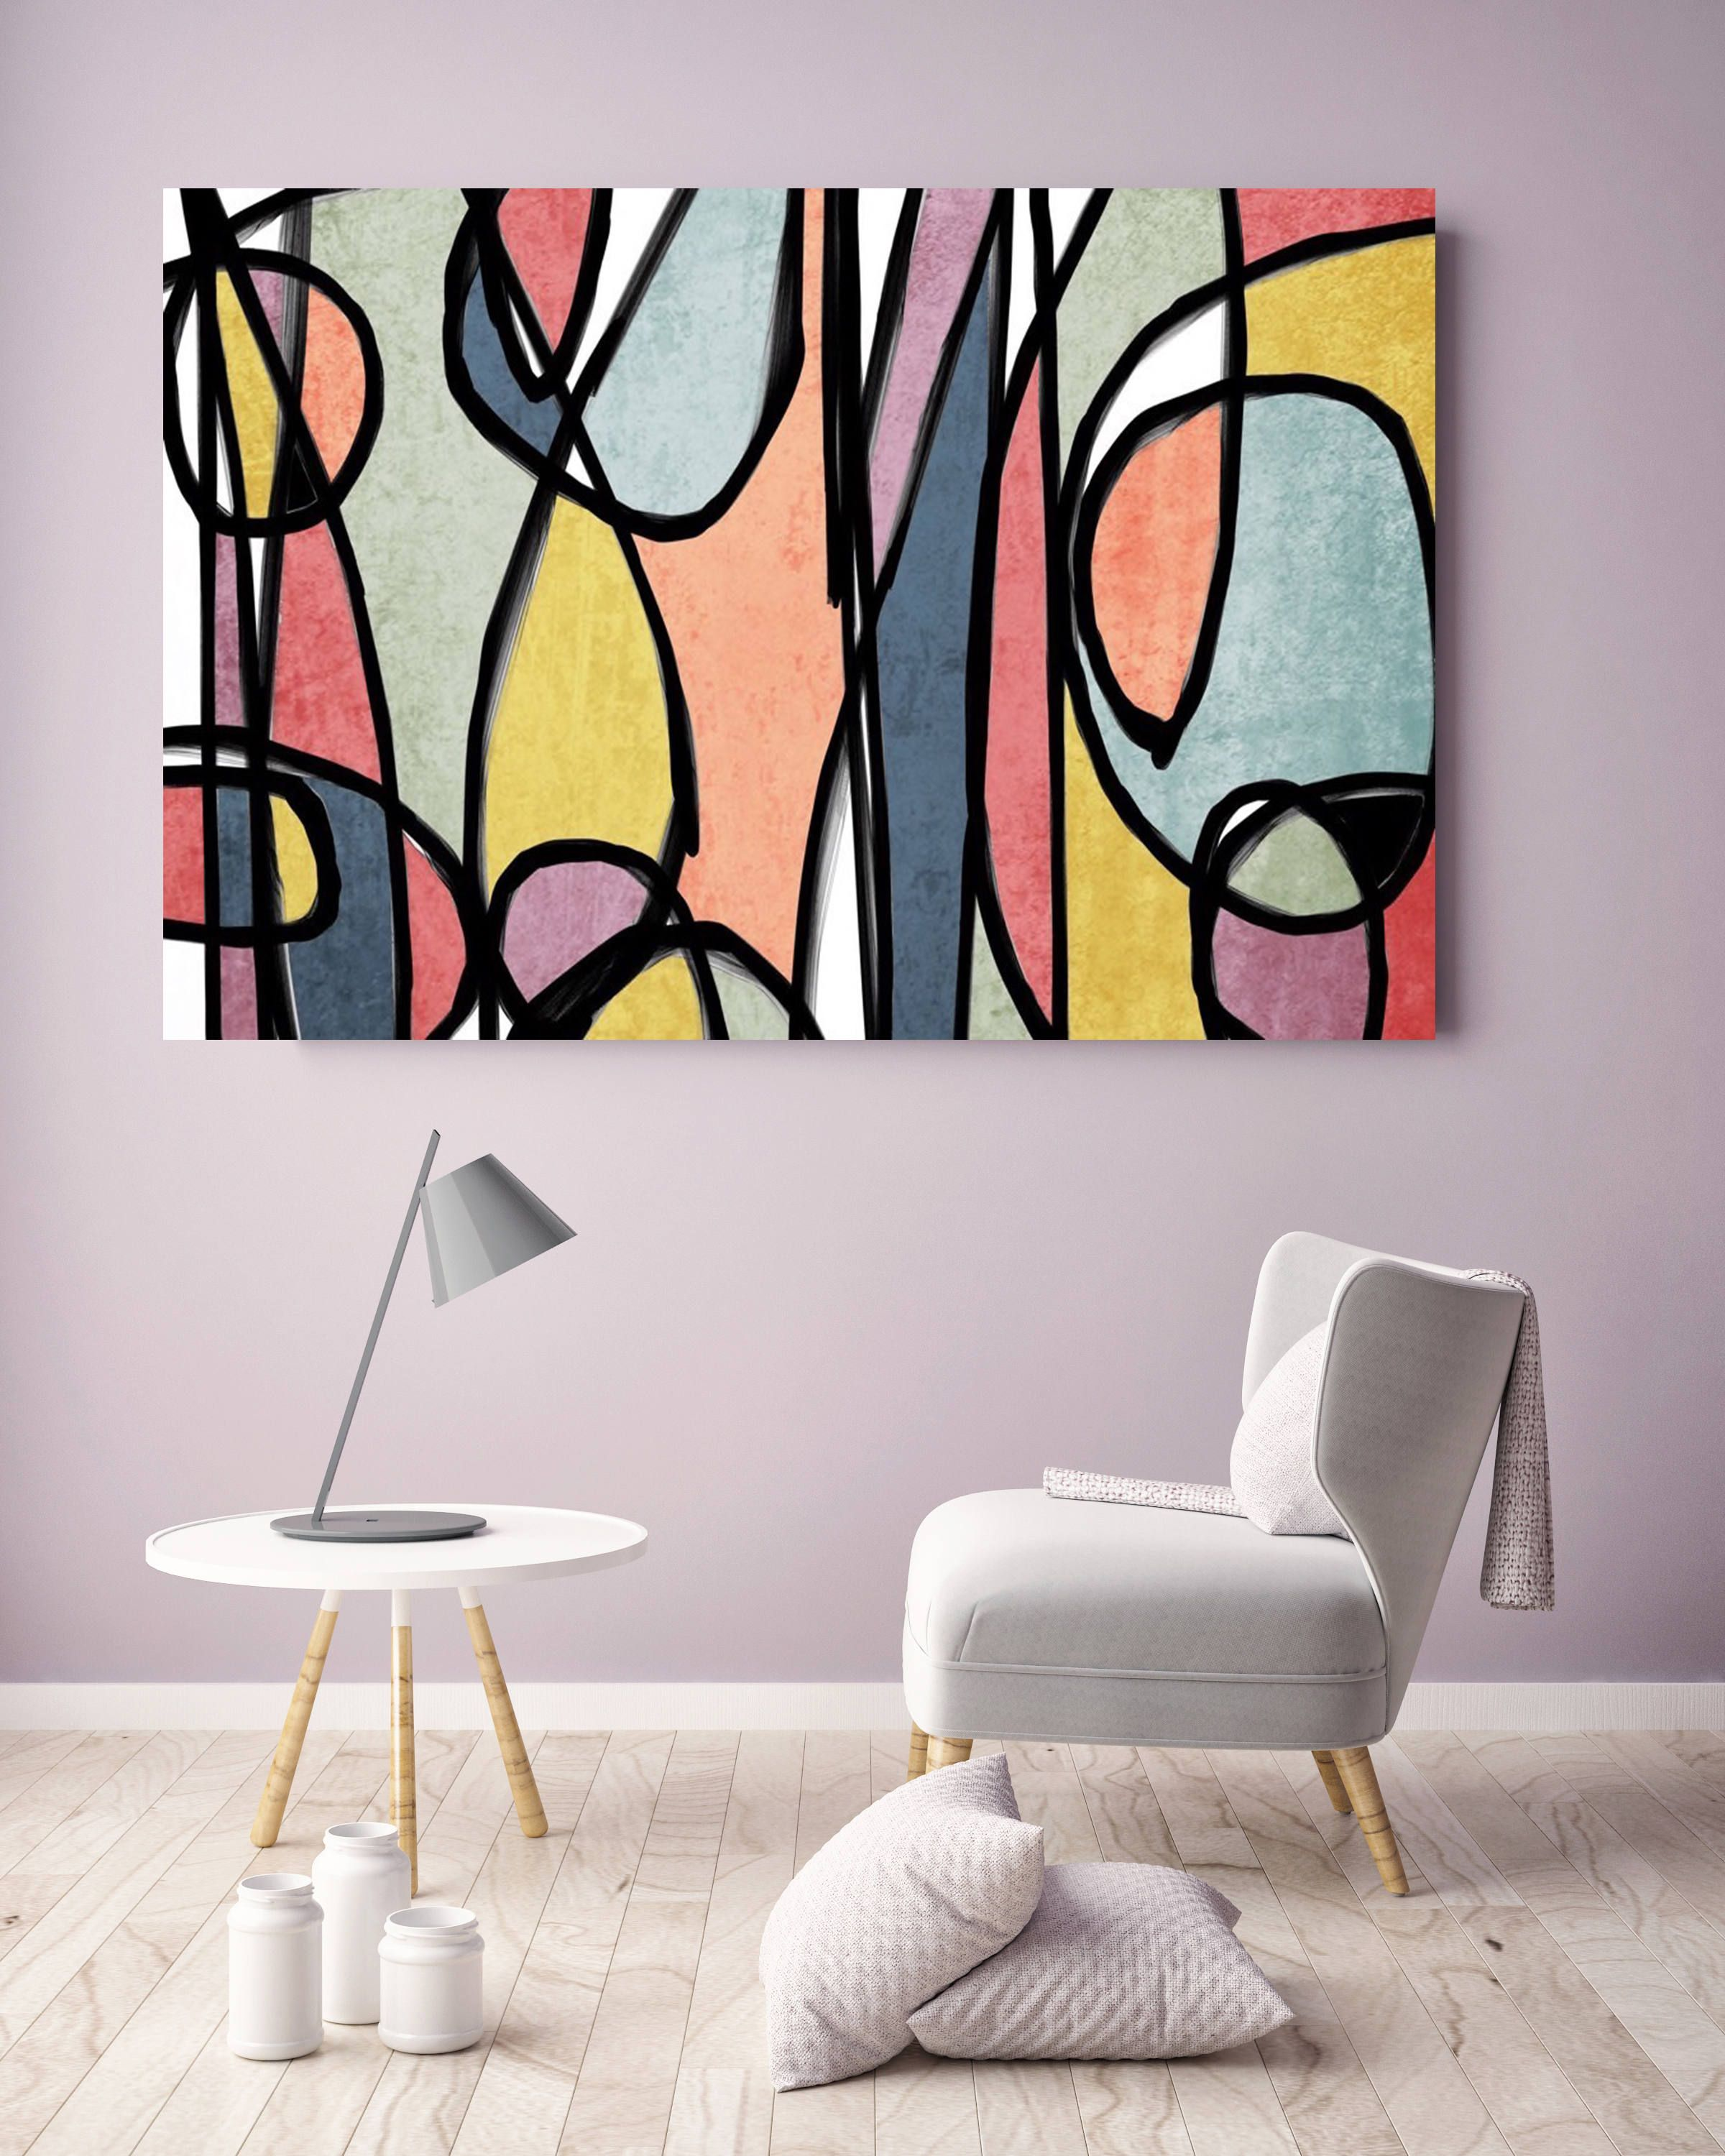 Vibrant Colorful Abstract 0 19 Mid Century Modern Colorful Canvas Art Print Mid Century Mode Colorful Canvas Art Abstract Art Collection Abstract Art Painting